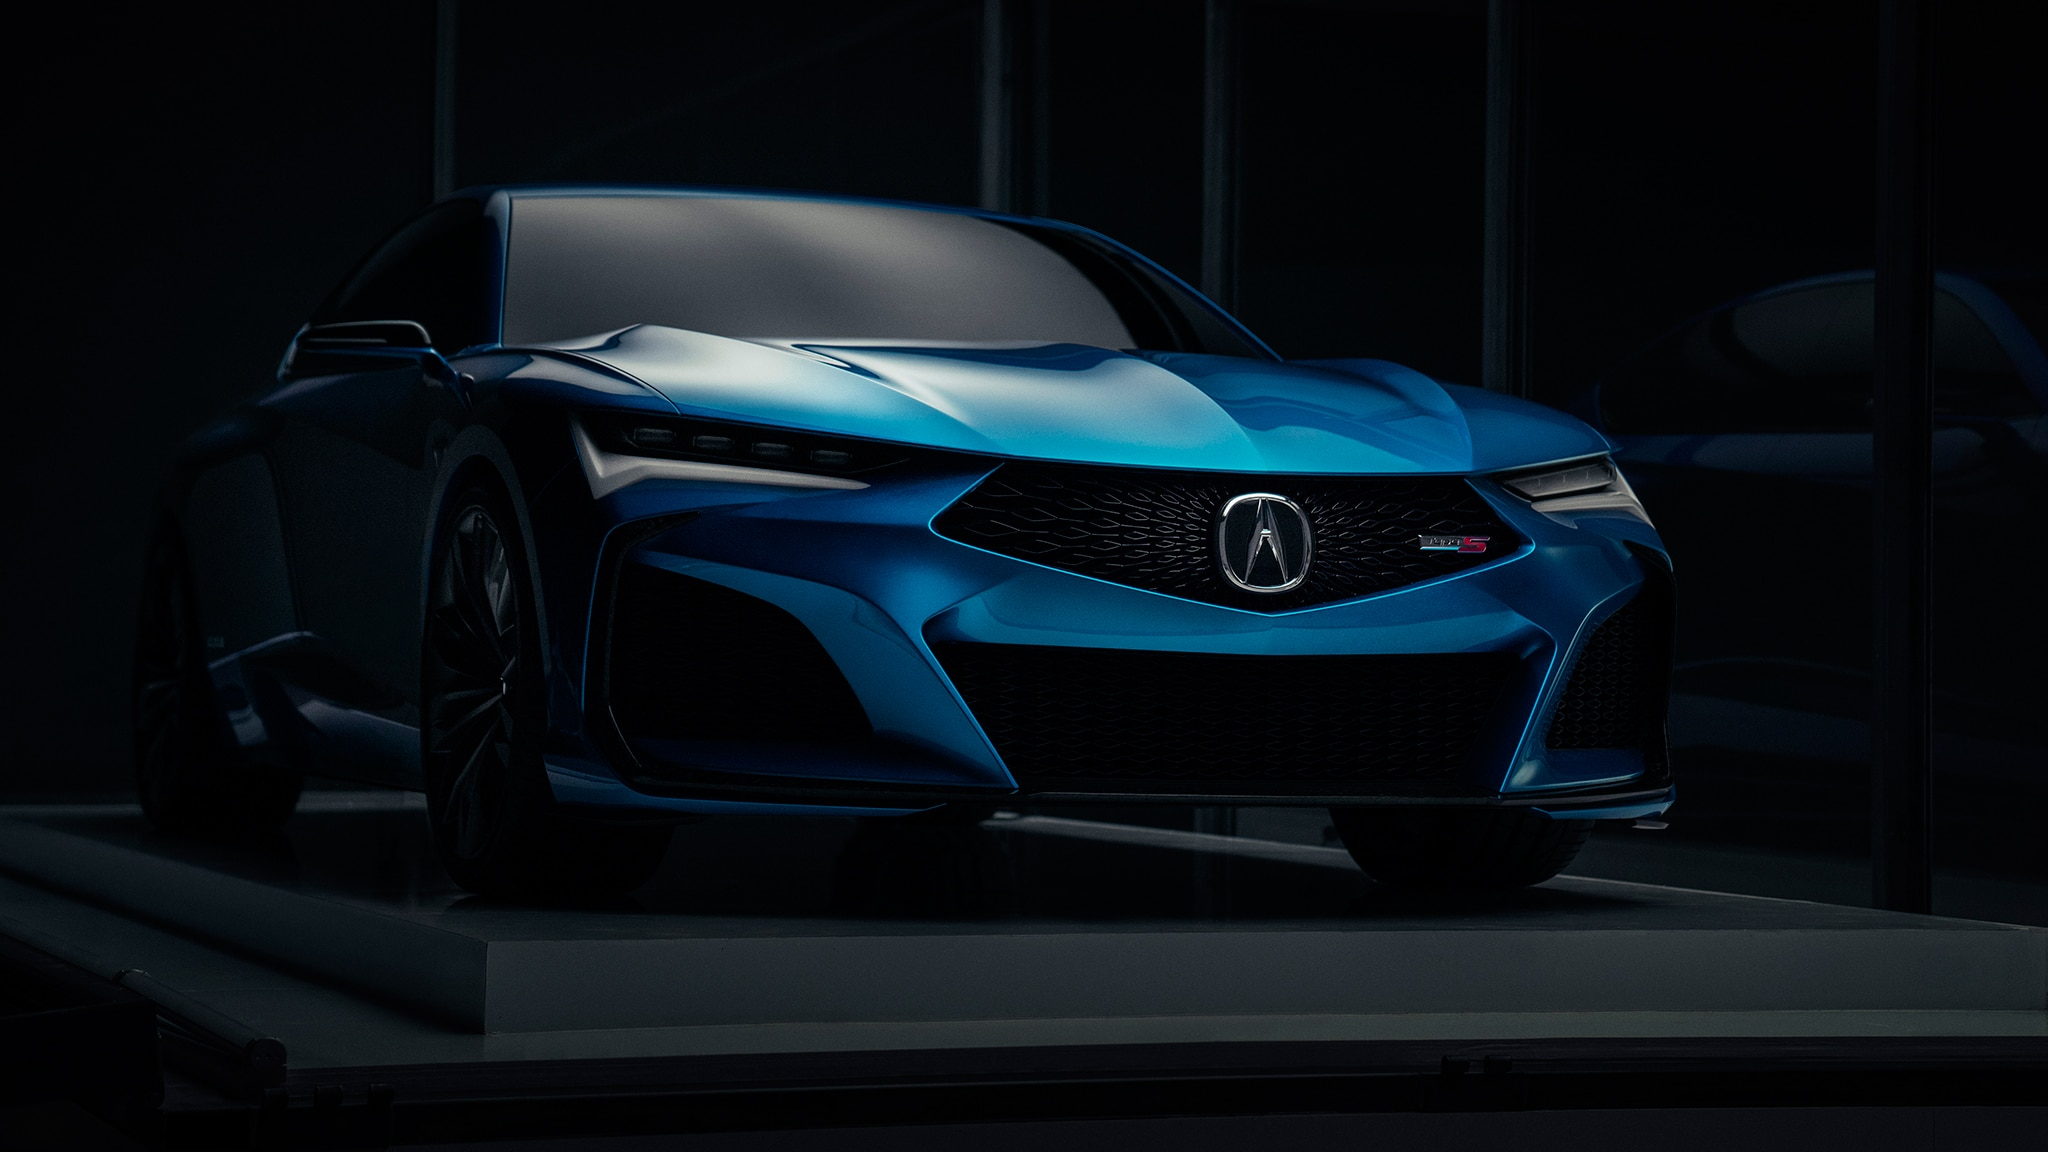 The 2021 Acura TLX Just Leaked Online Again 2048x1152